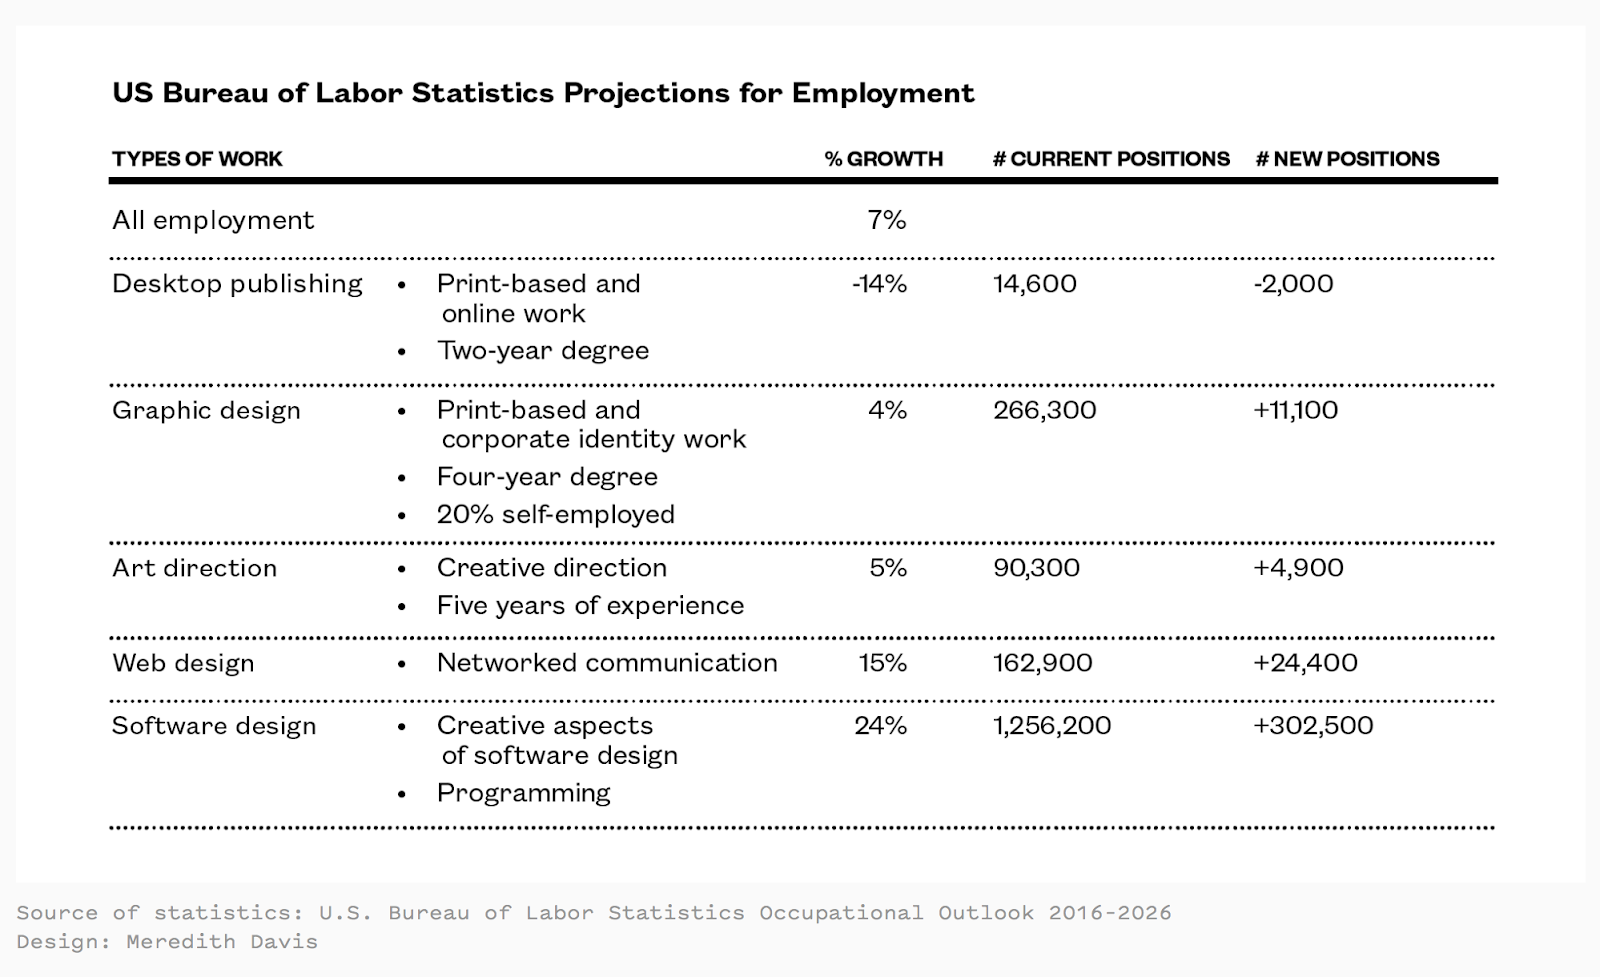 US Bureau of Labor Statistics Projections for Employment